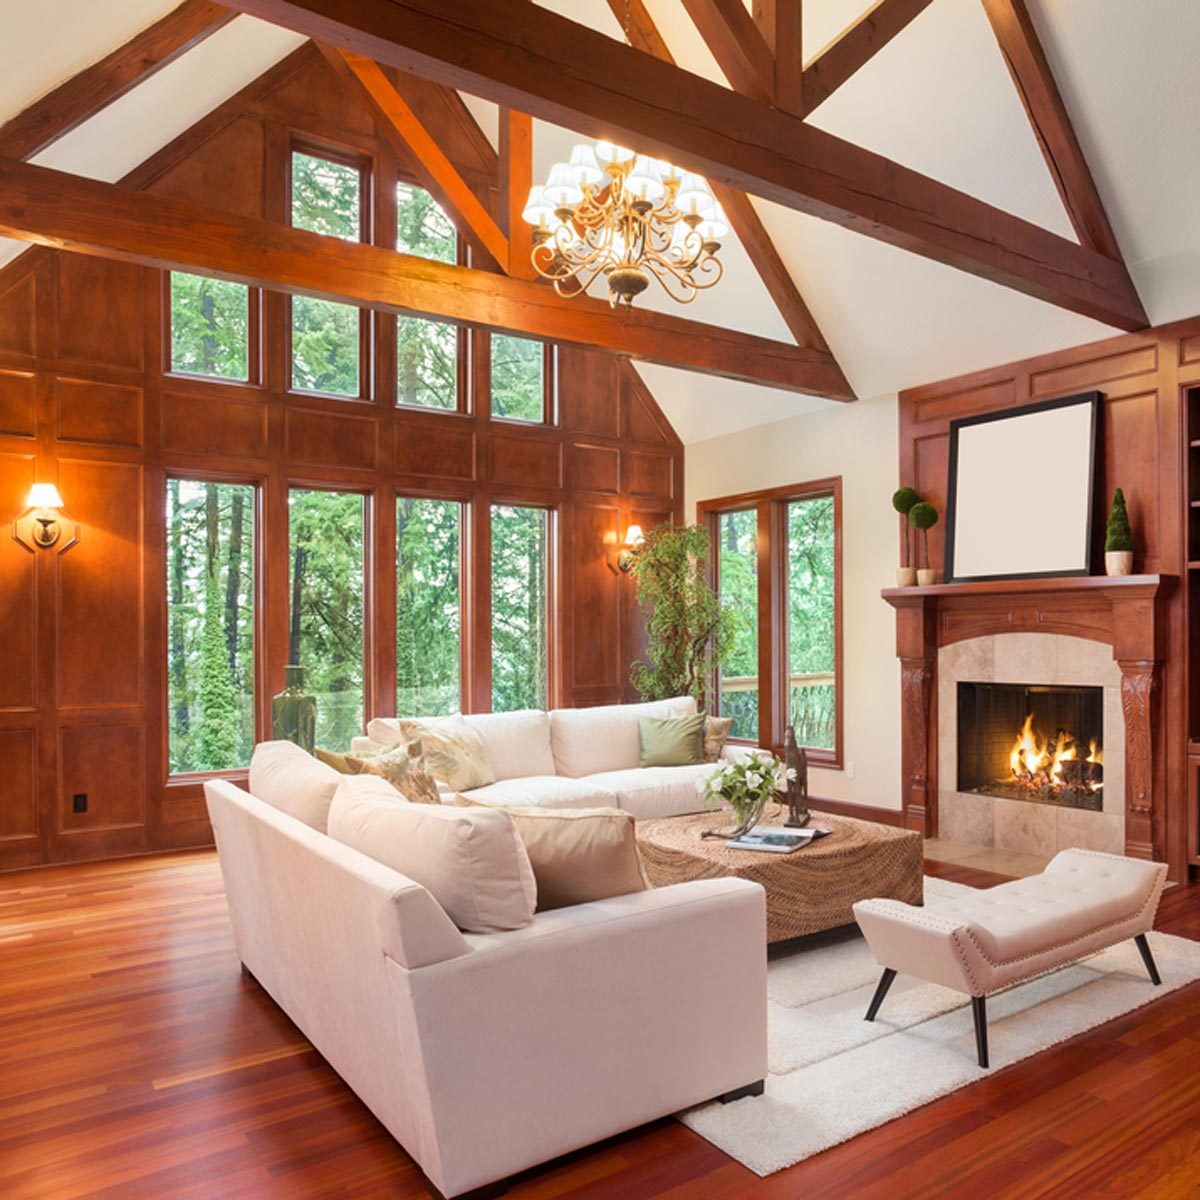 Shutterstock 360087827 wood trim living room with vaulted ceiling